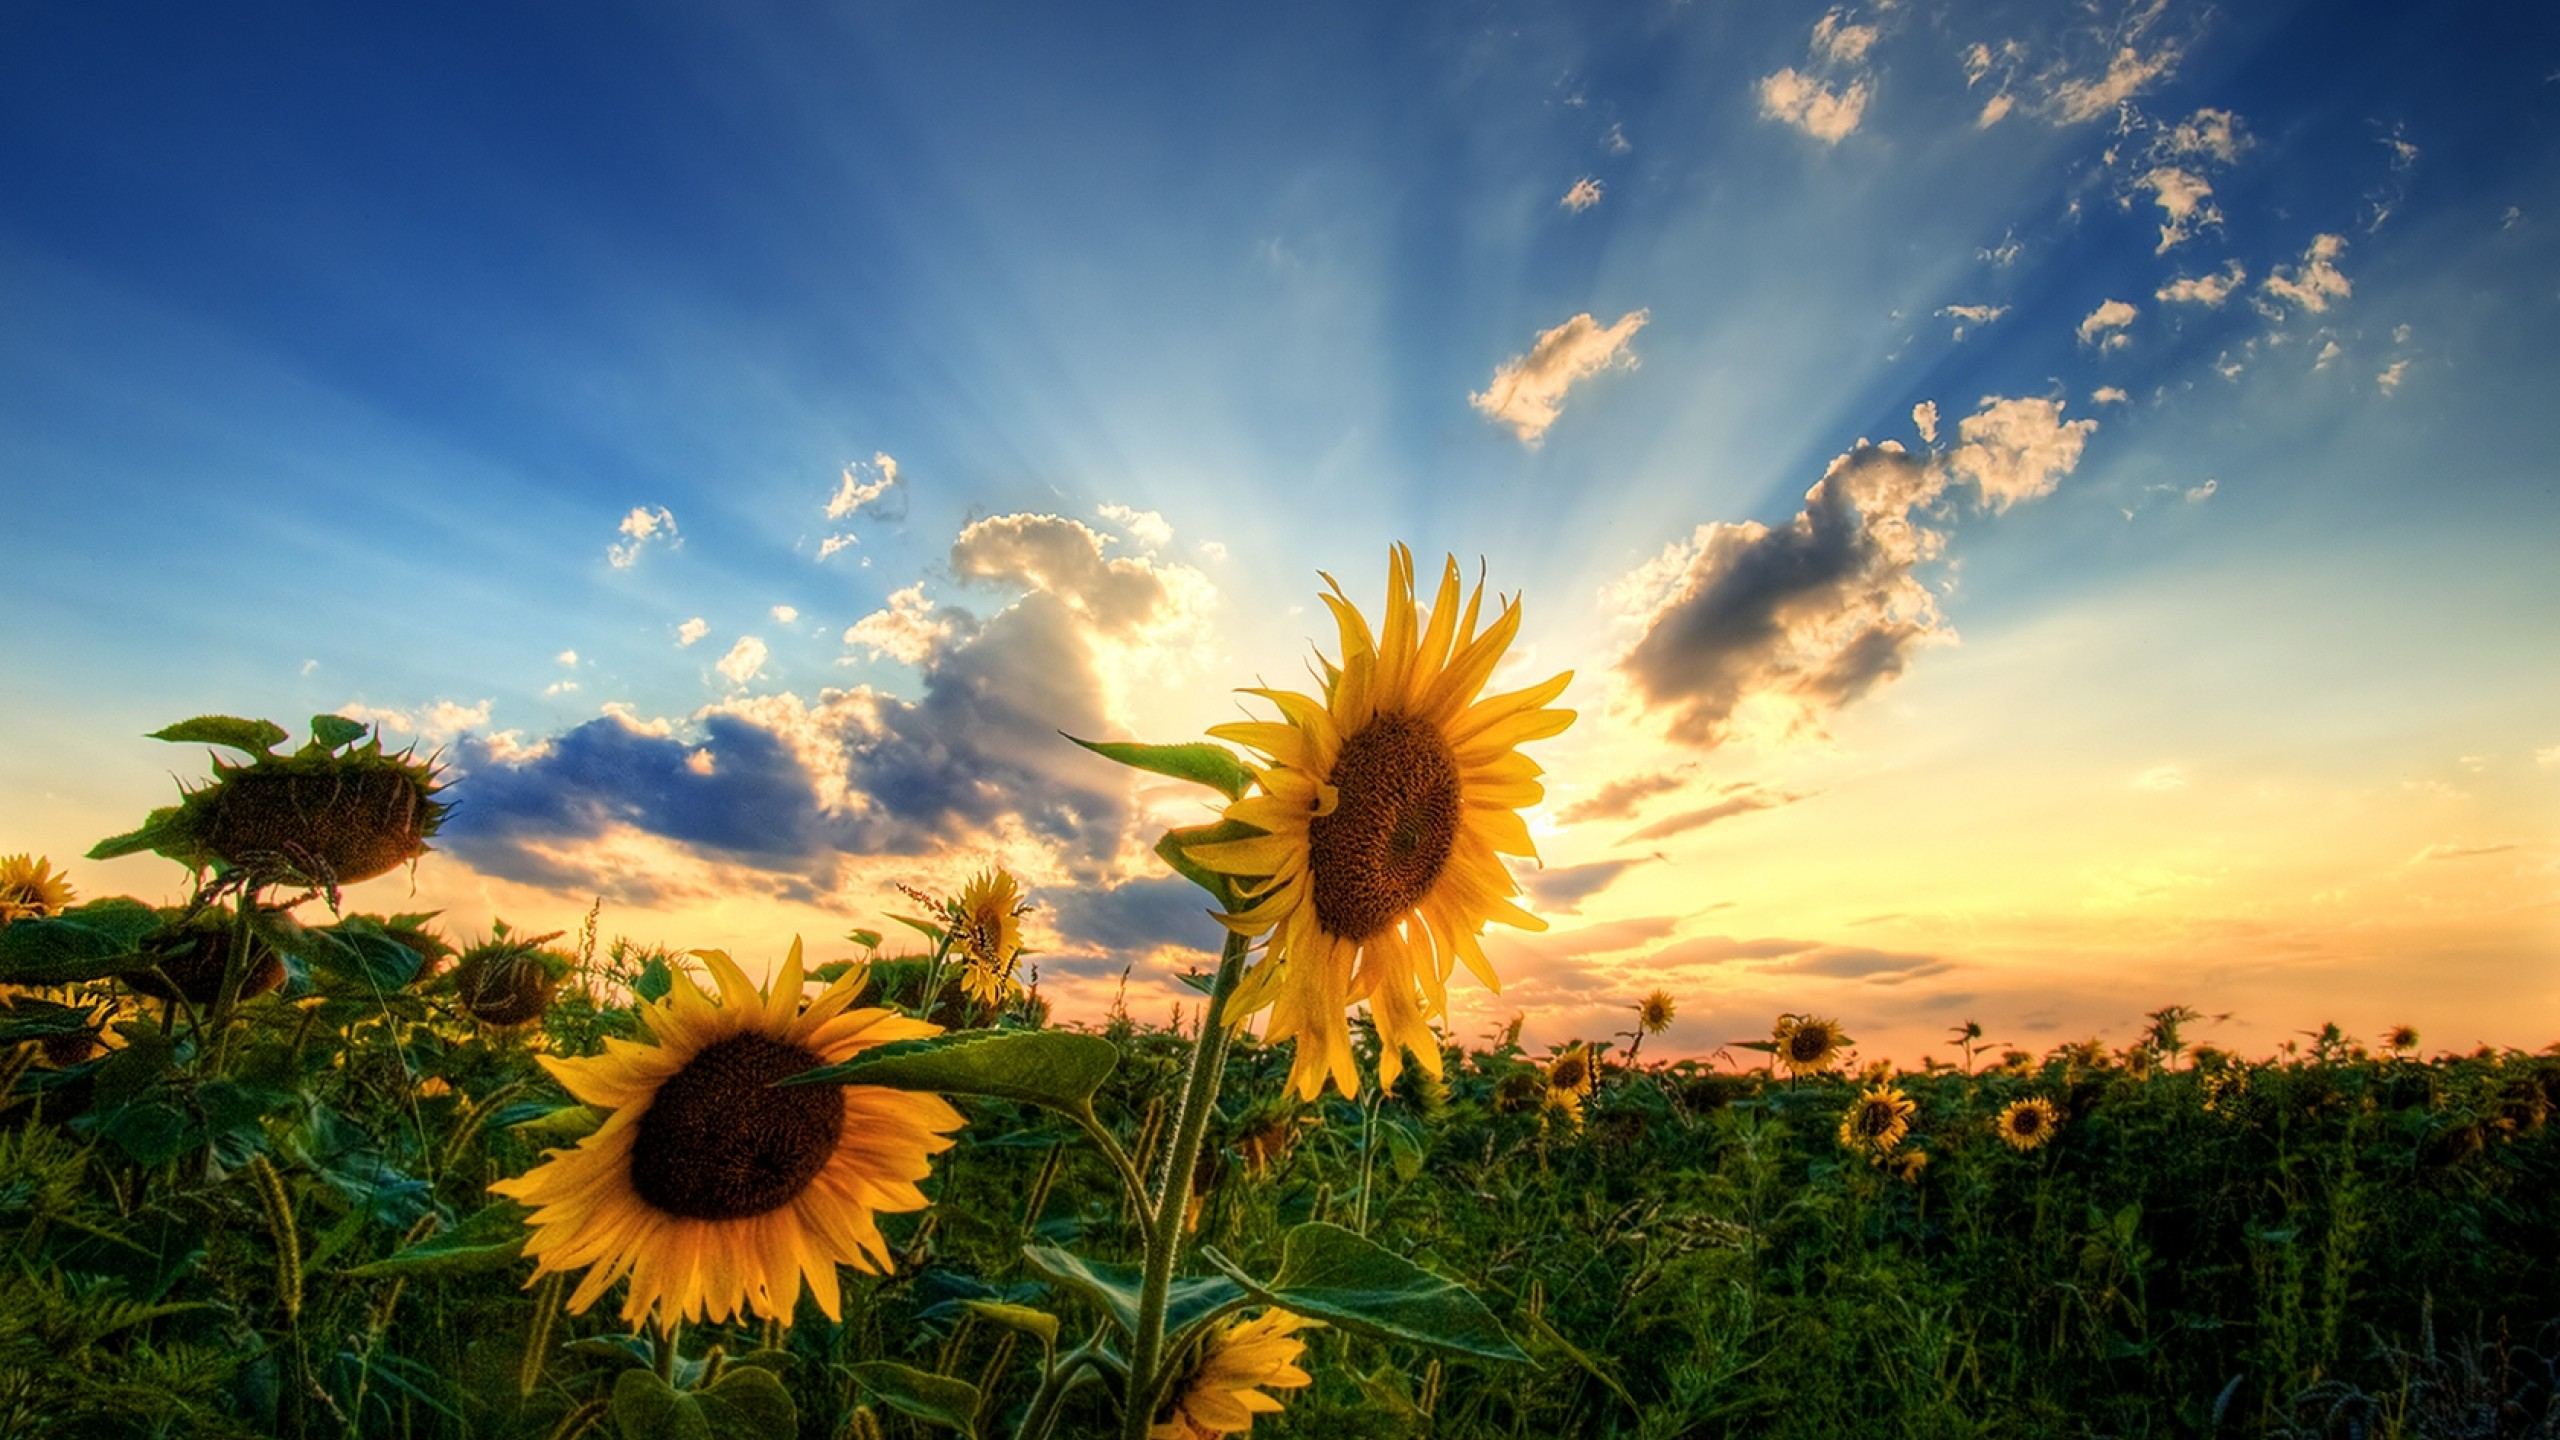 Best Wallpaper Horse Flower - tumblr_static_3d-abstract_other_sunflower-field_46109  Perfect Image Reference_76755.jpg